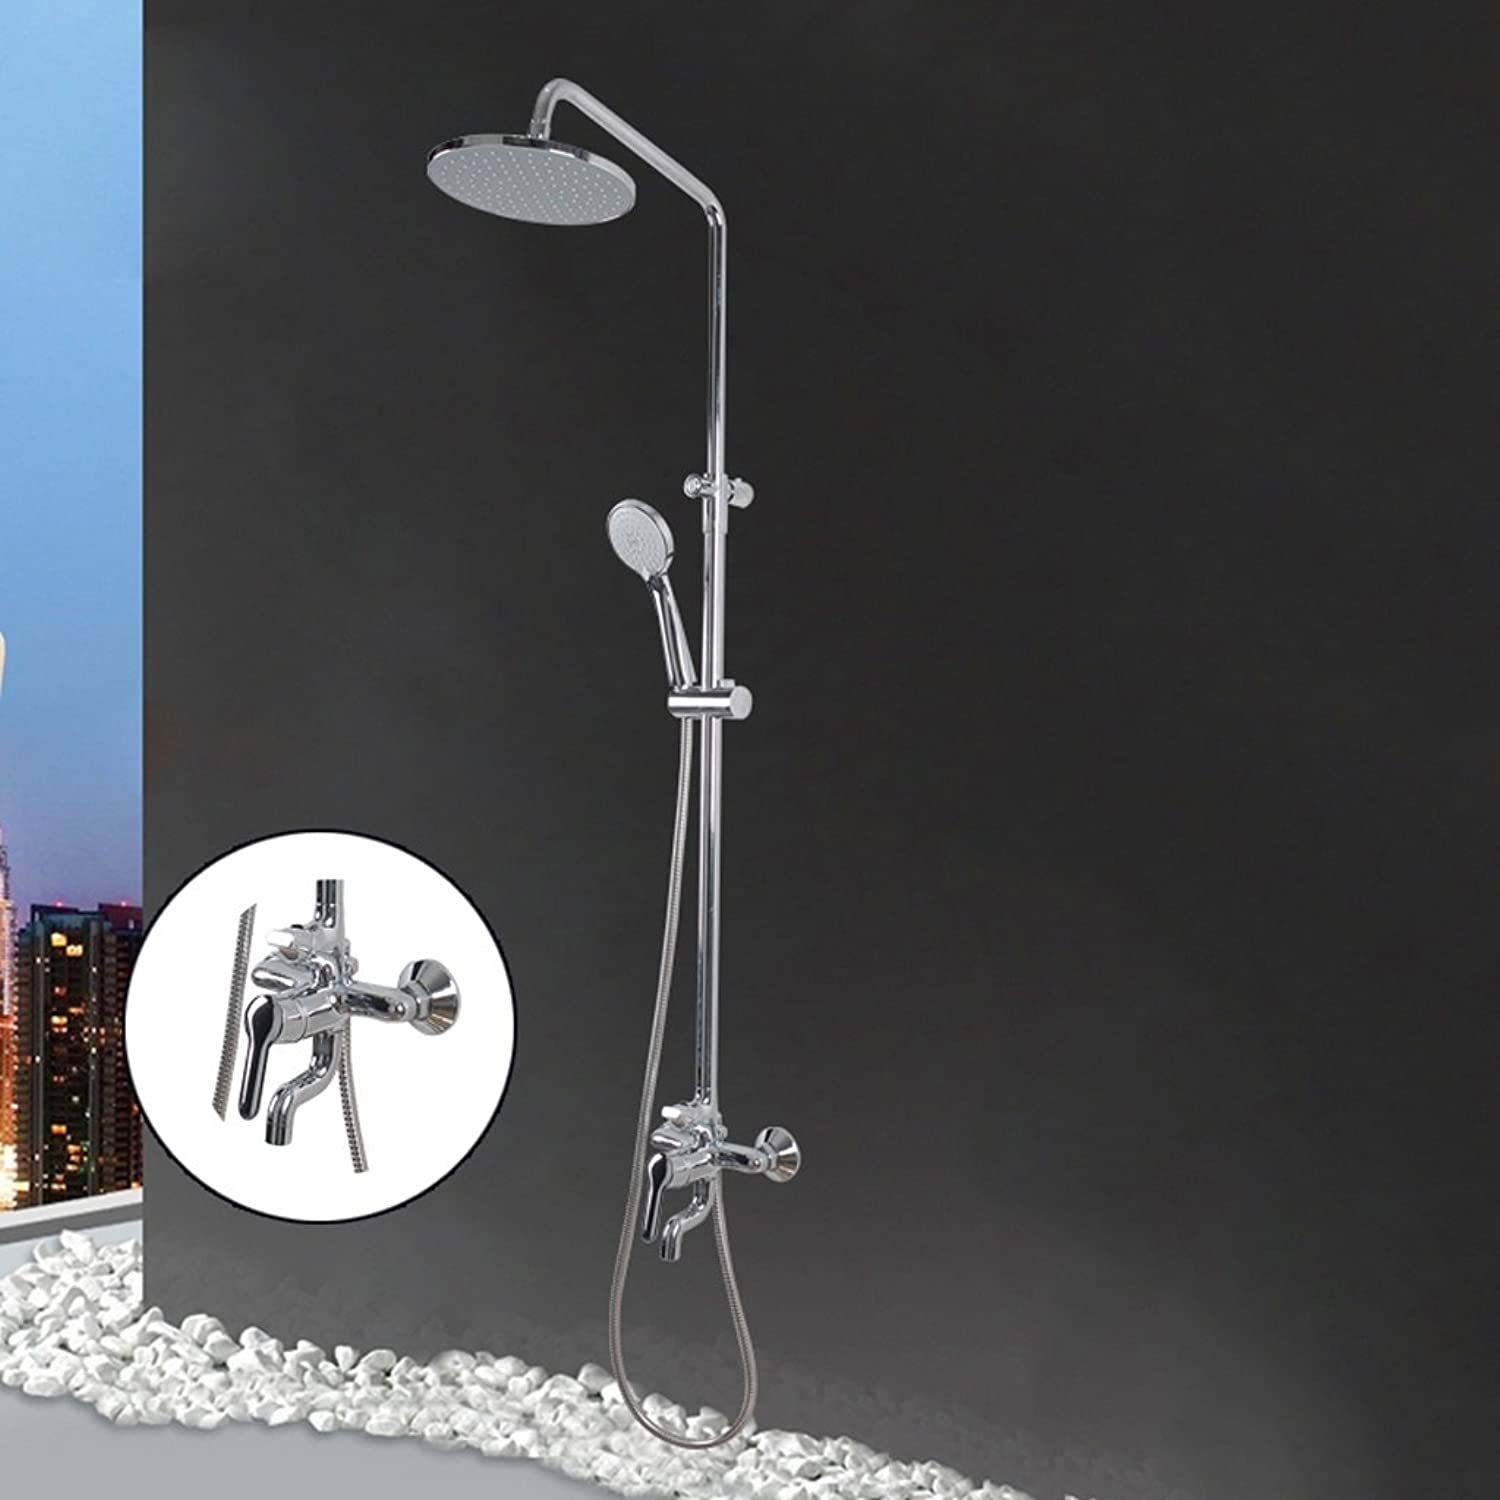 PIGE-Shower set with three functions with water shower set